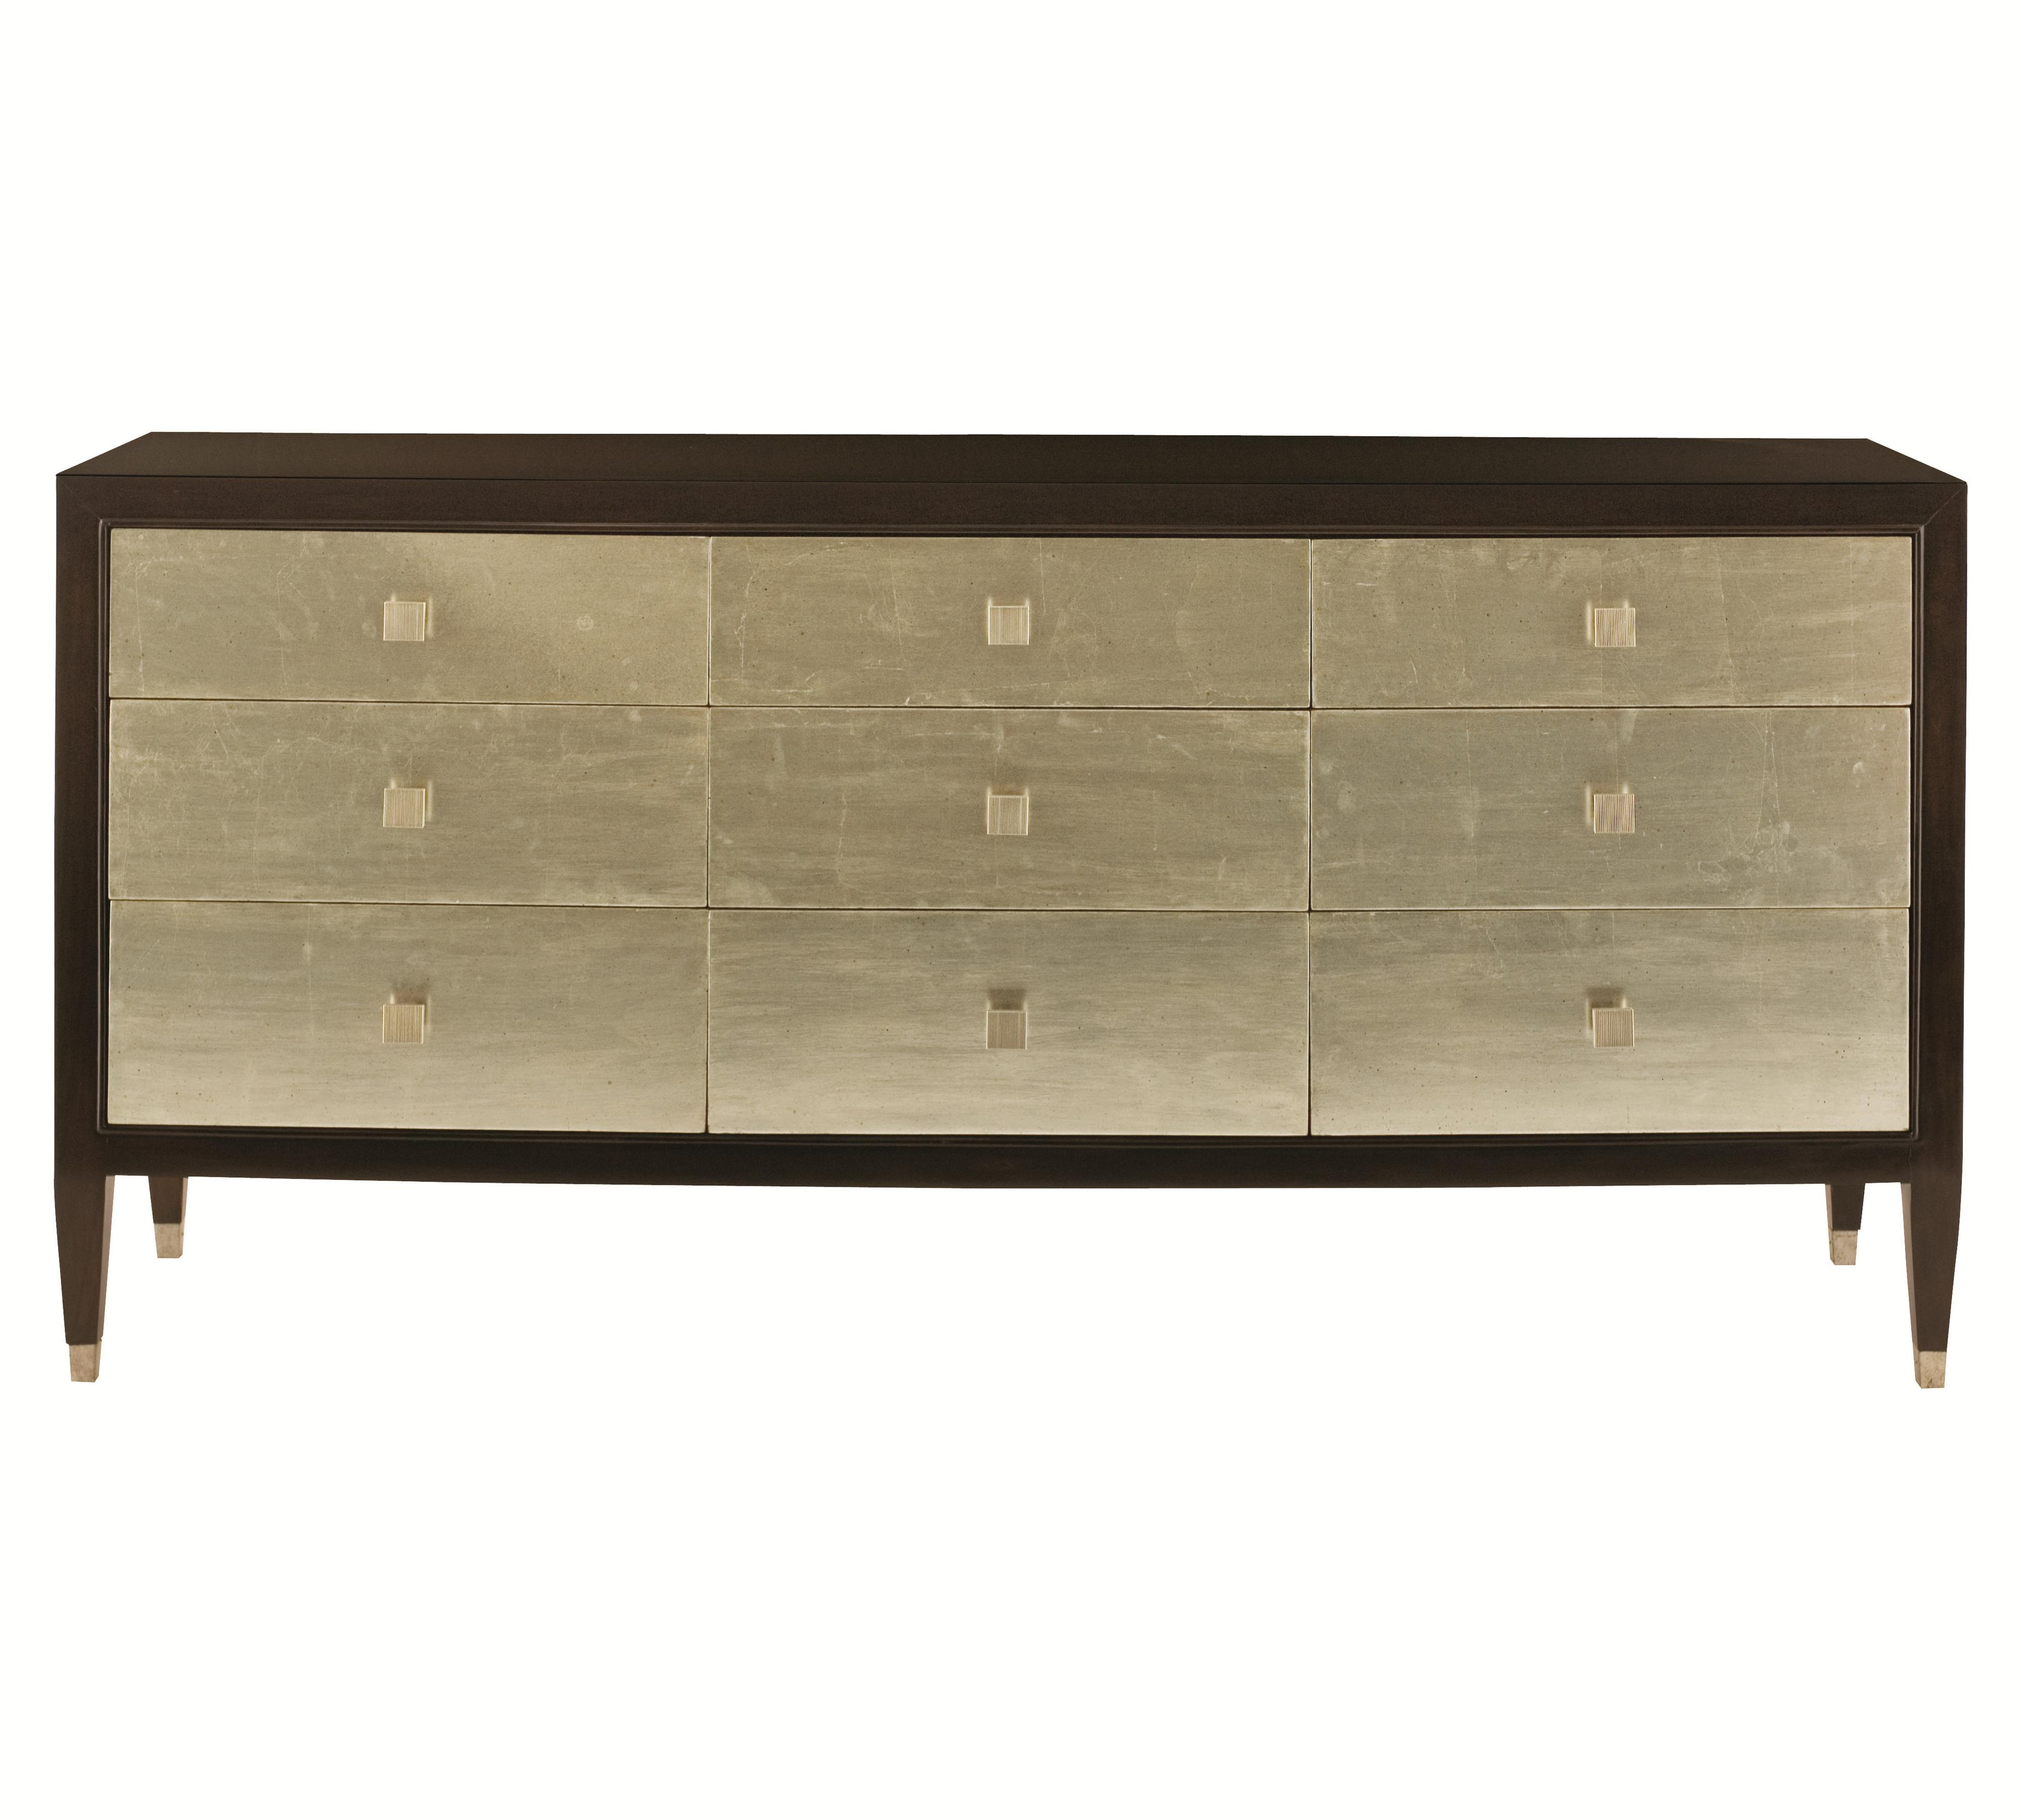 Interiors - Aurelia Dresser by Bernhardt at Fisher Home Furnishings